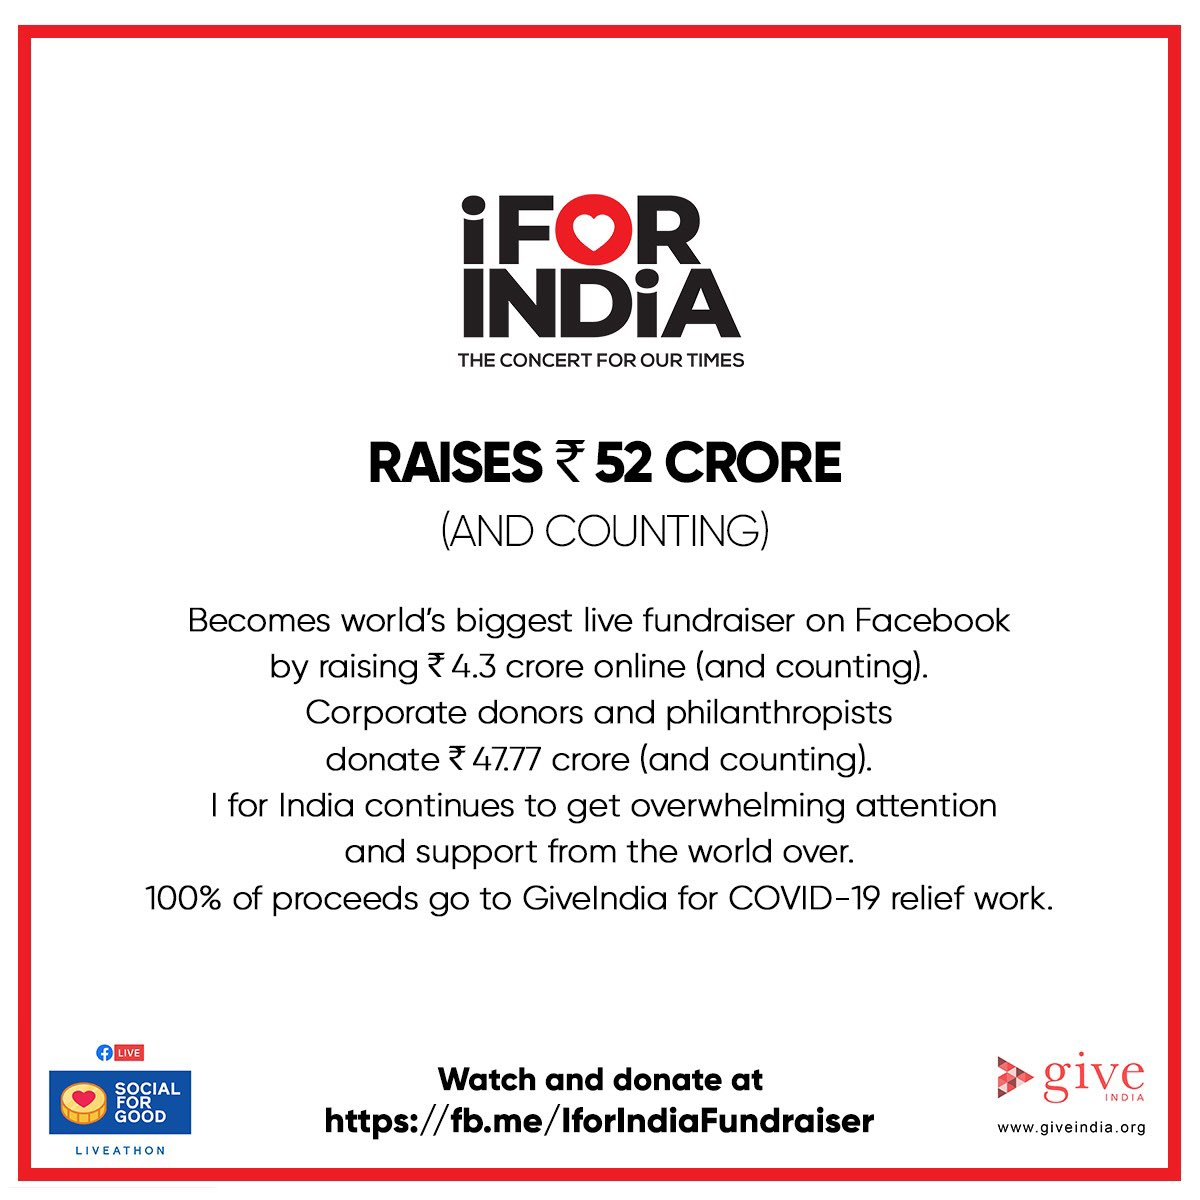 From our hearts to yours. Thank you for watching.Thank you for responding.Thank you for donating. #IForIndia started out as a concert. But it can be a movement. Let's continue to build a safe, healthy & strong India. I For India. Please donate   @GiveIndia